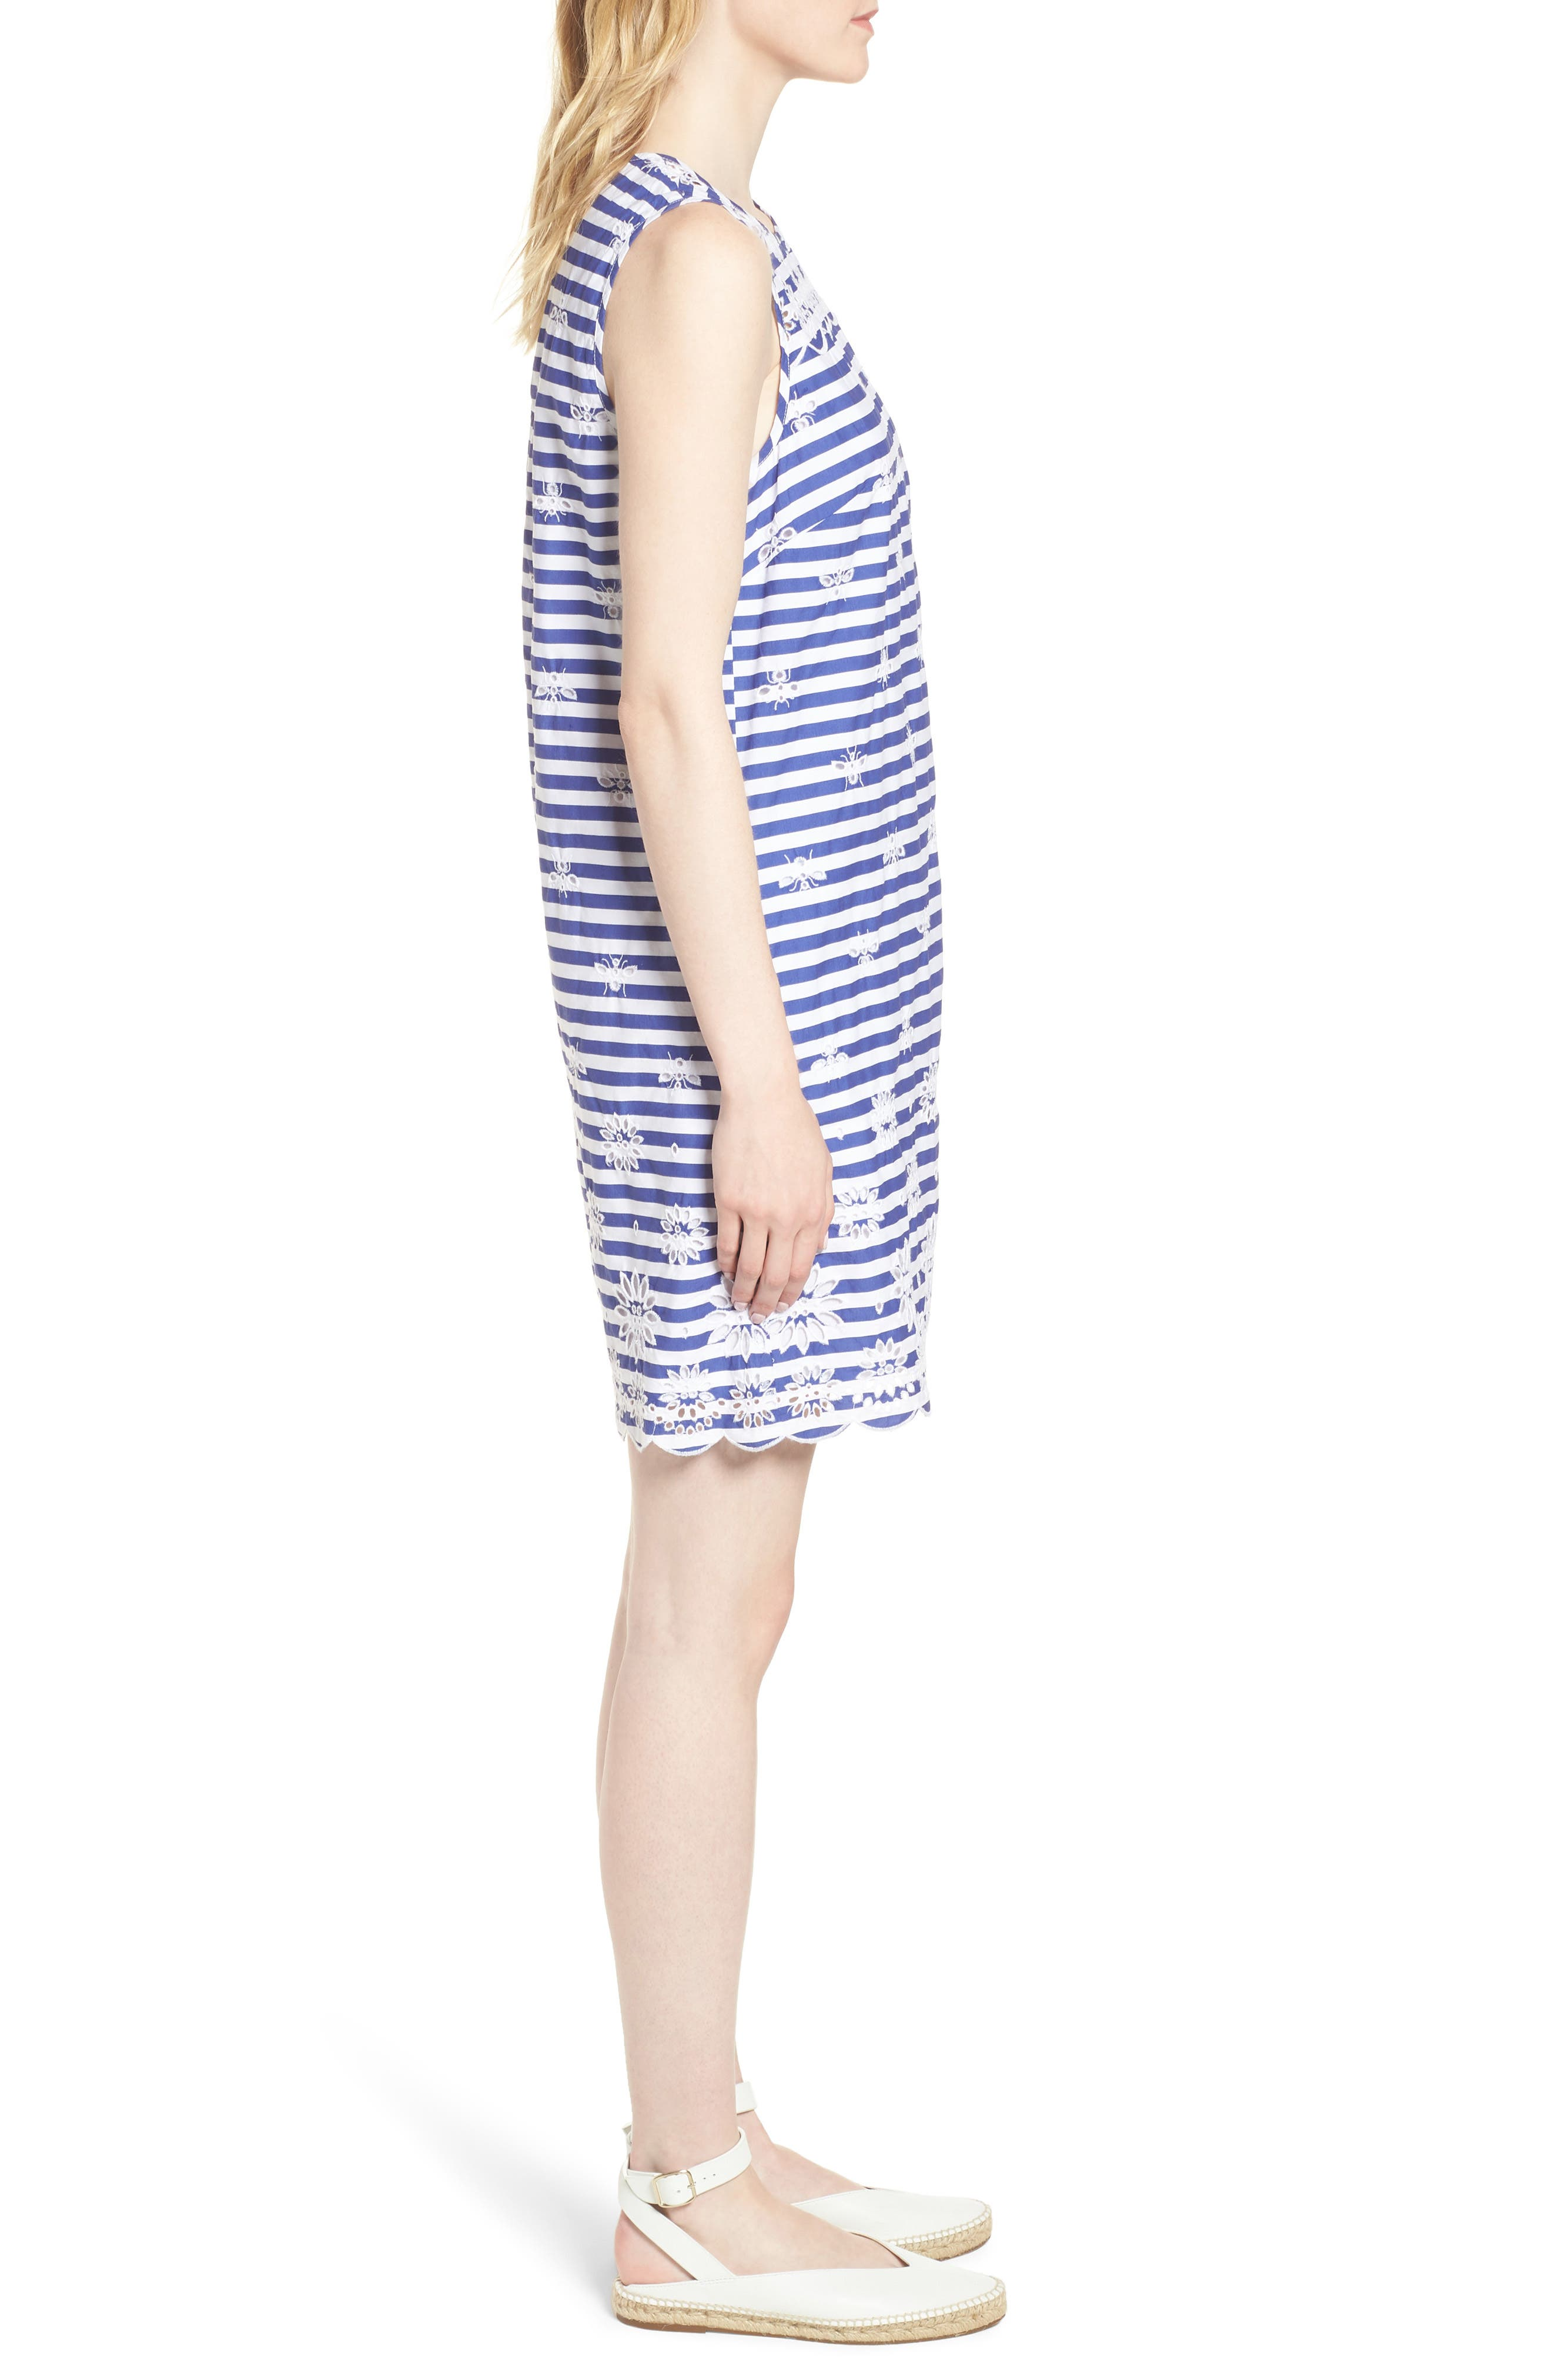 Dante Embroidered Stripe Dress,                             Alternate thumbnail 3, color,                             400